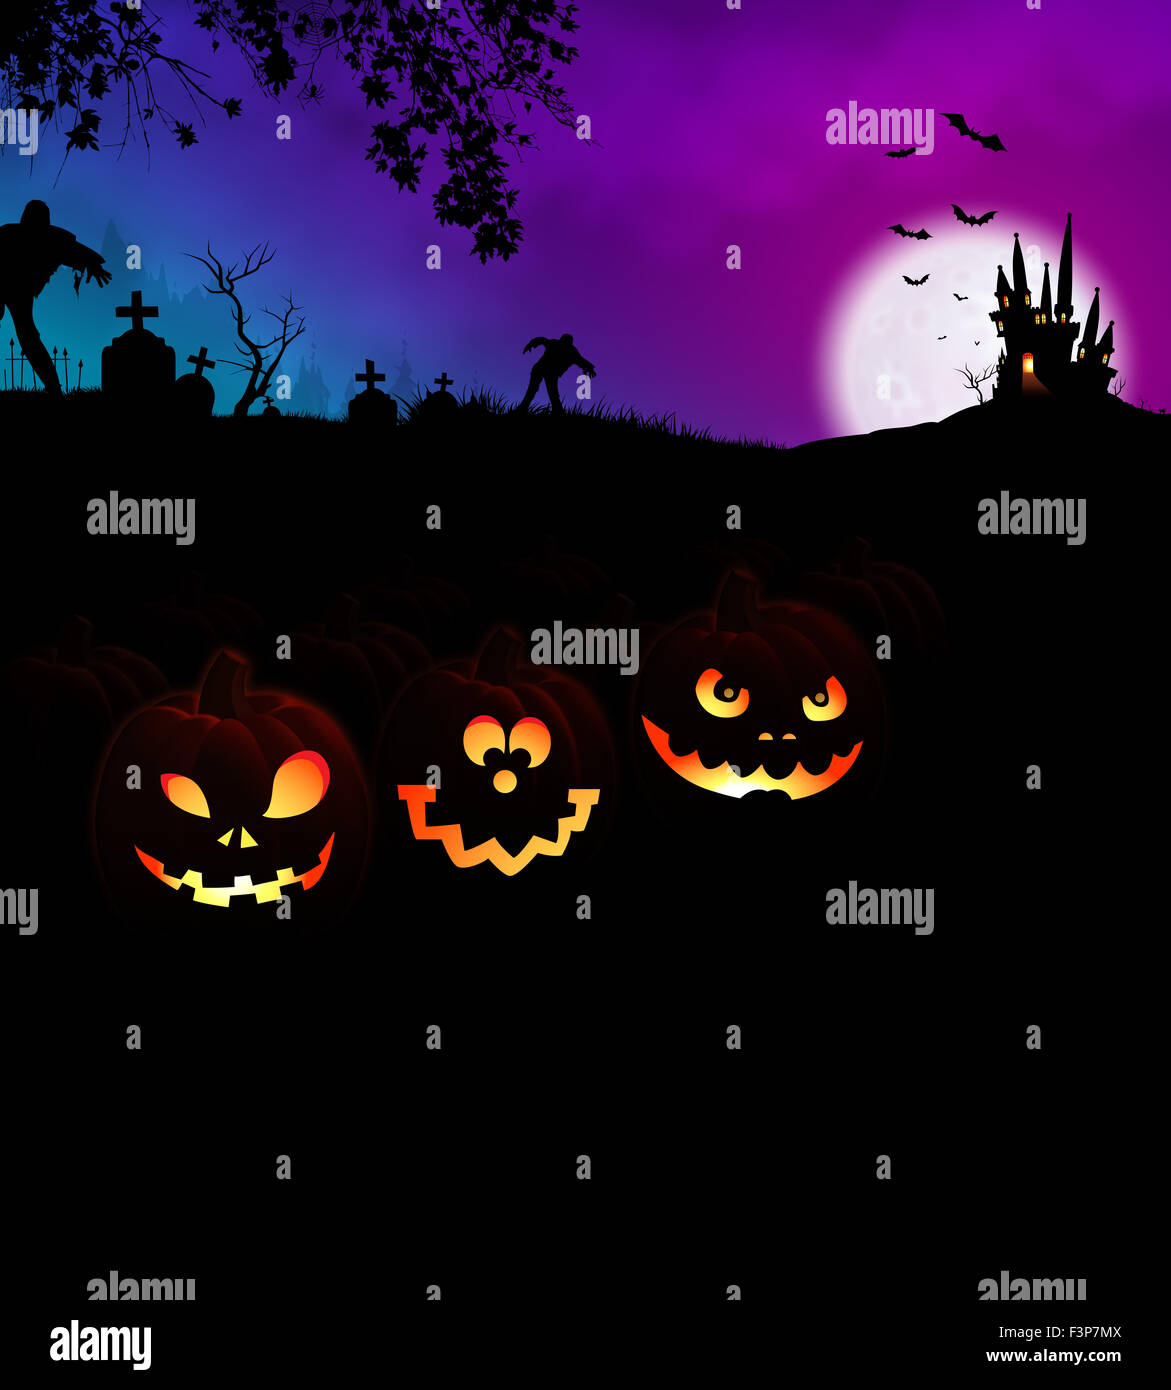 Halloween Scary Night Party Concept with glowing Jack O Lantern pumpkins at cemetery and monsters, horror haunted - Stock Image